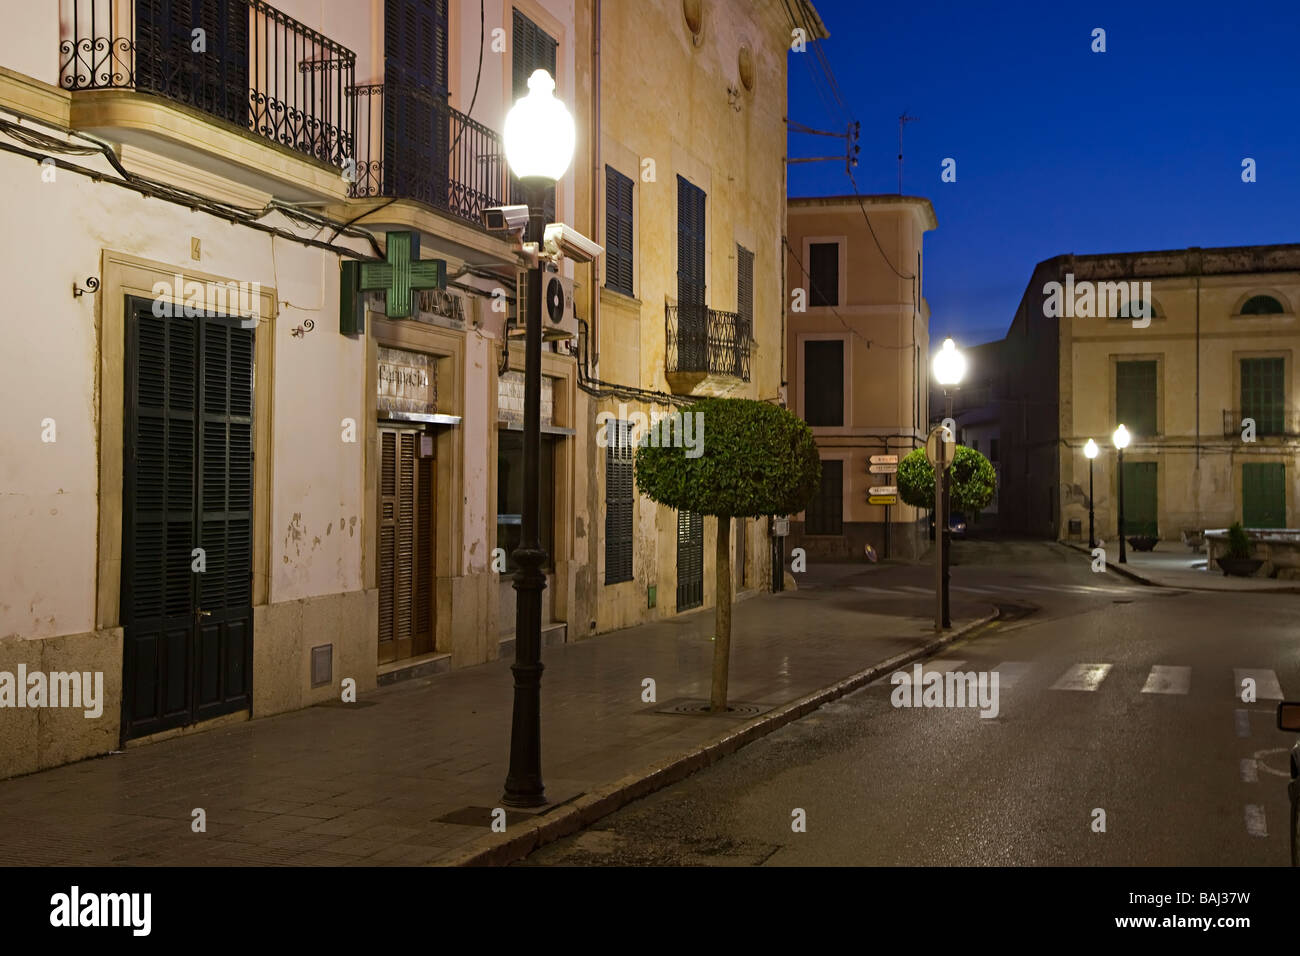 Empty street at dusk with security cameras on lamp post Felanitx Mallorca Spain - Stock Image